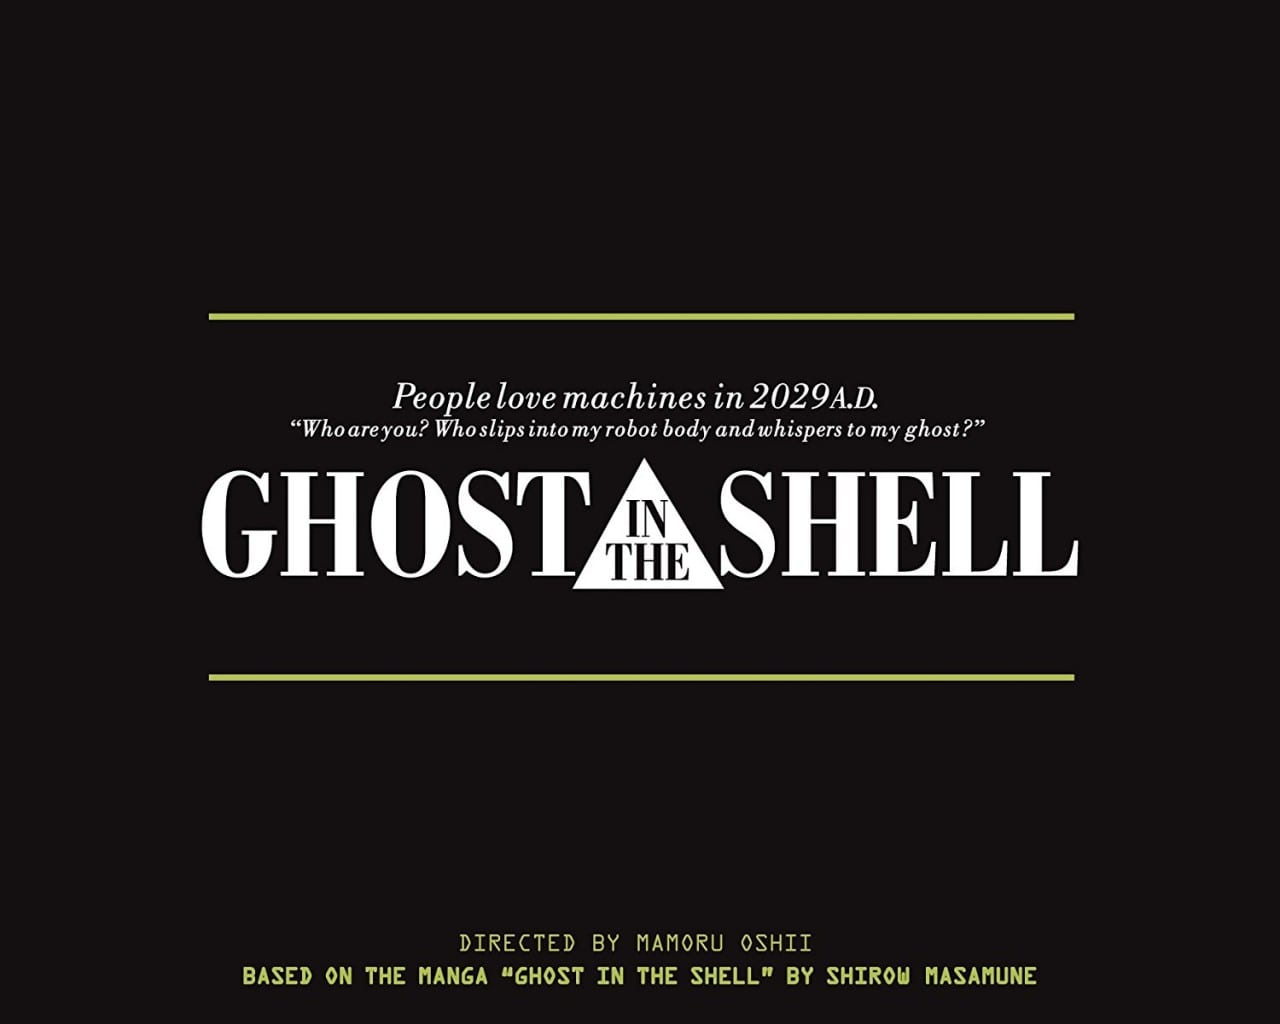 Ghost in the Shell Trailer #2